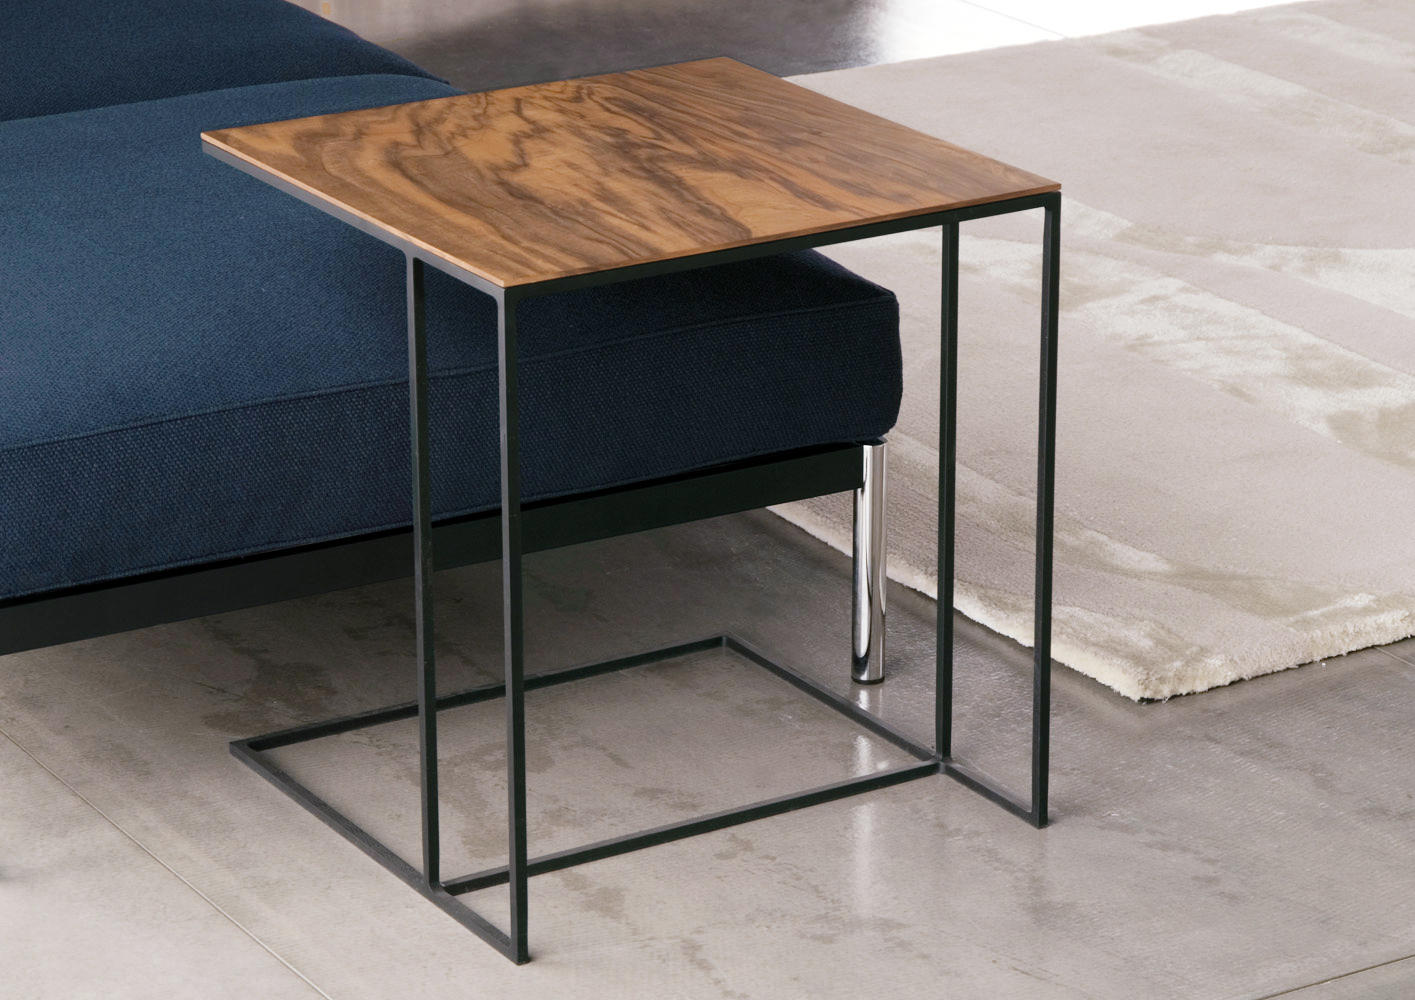 leger side tables from minotti architonic. Black Bedroom Furniture Sets. Home Design Ideas